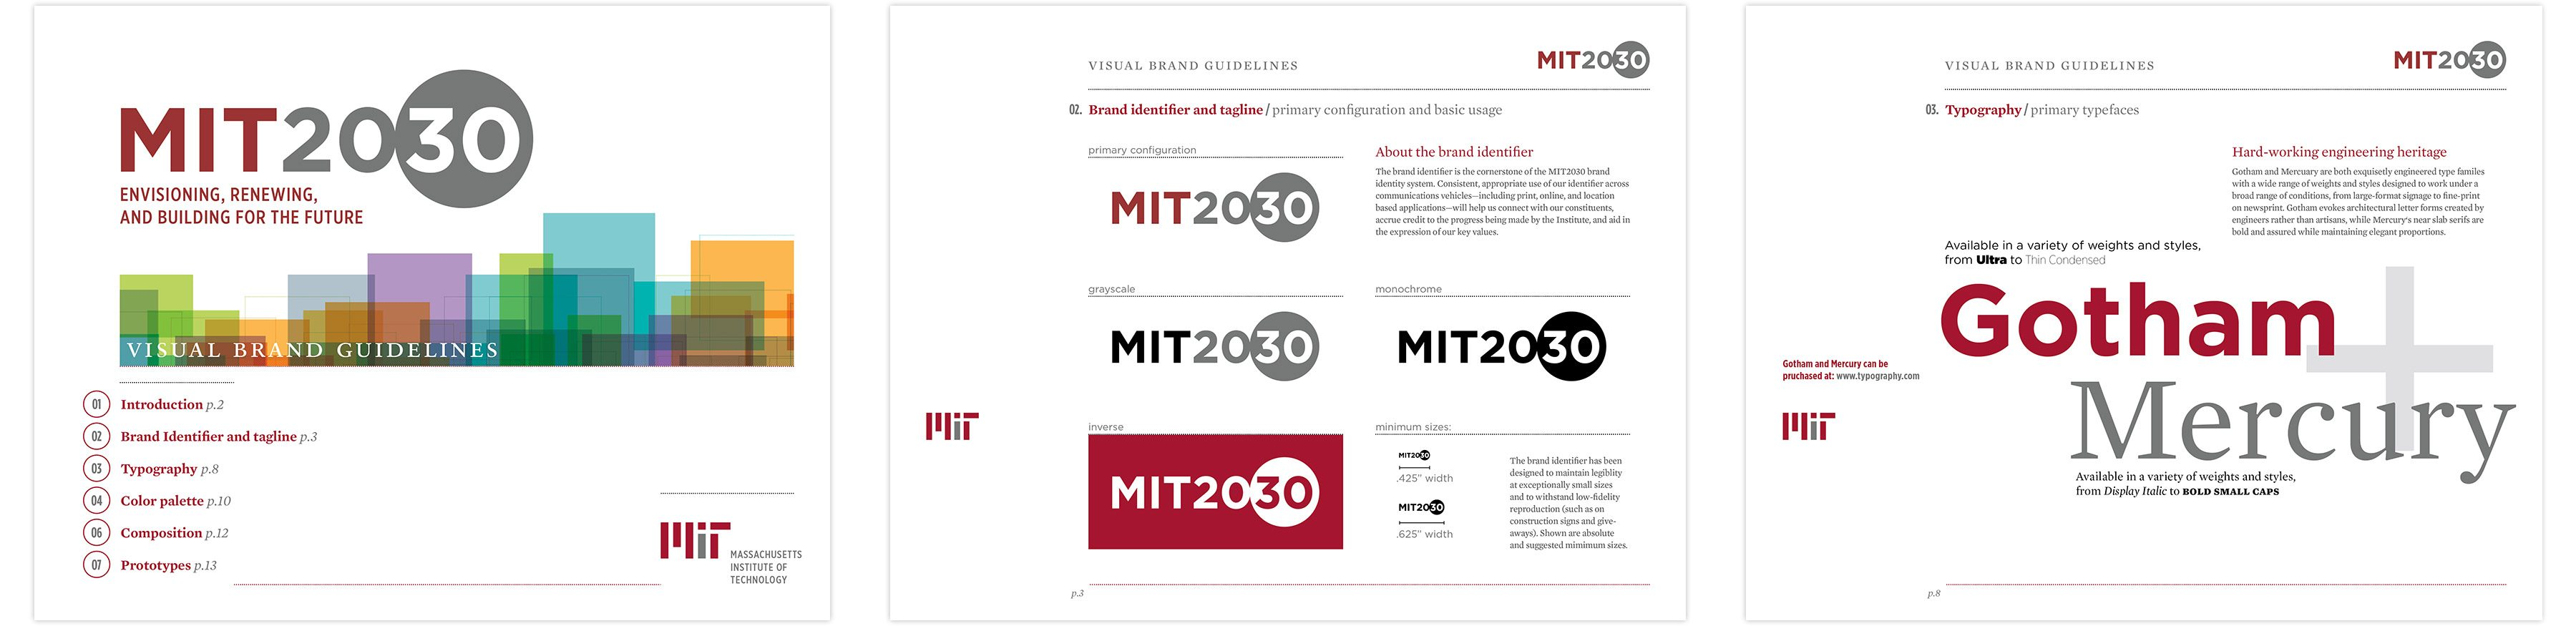 MIT 2030 brand book spread